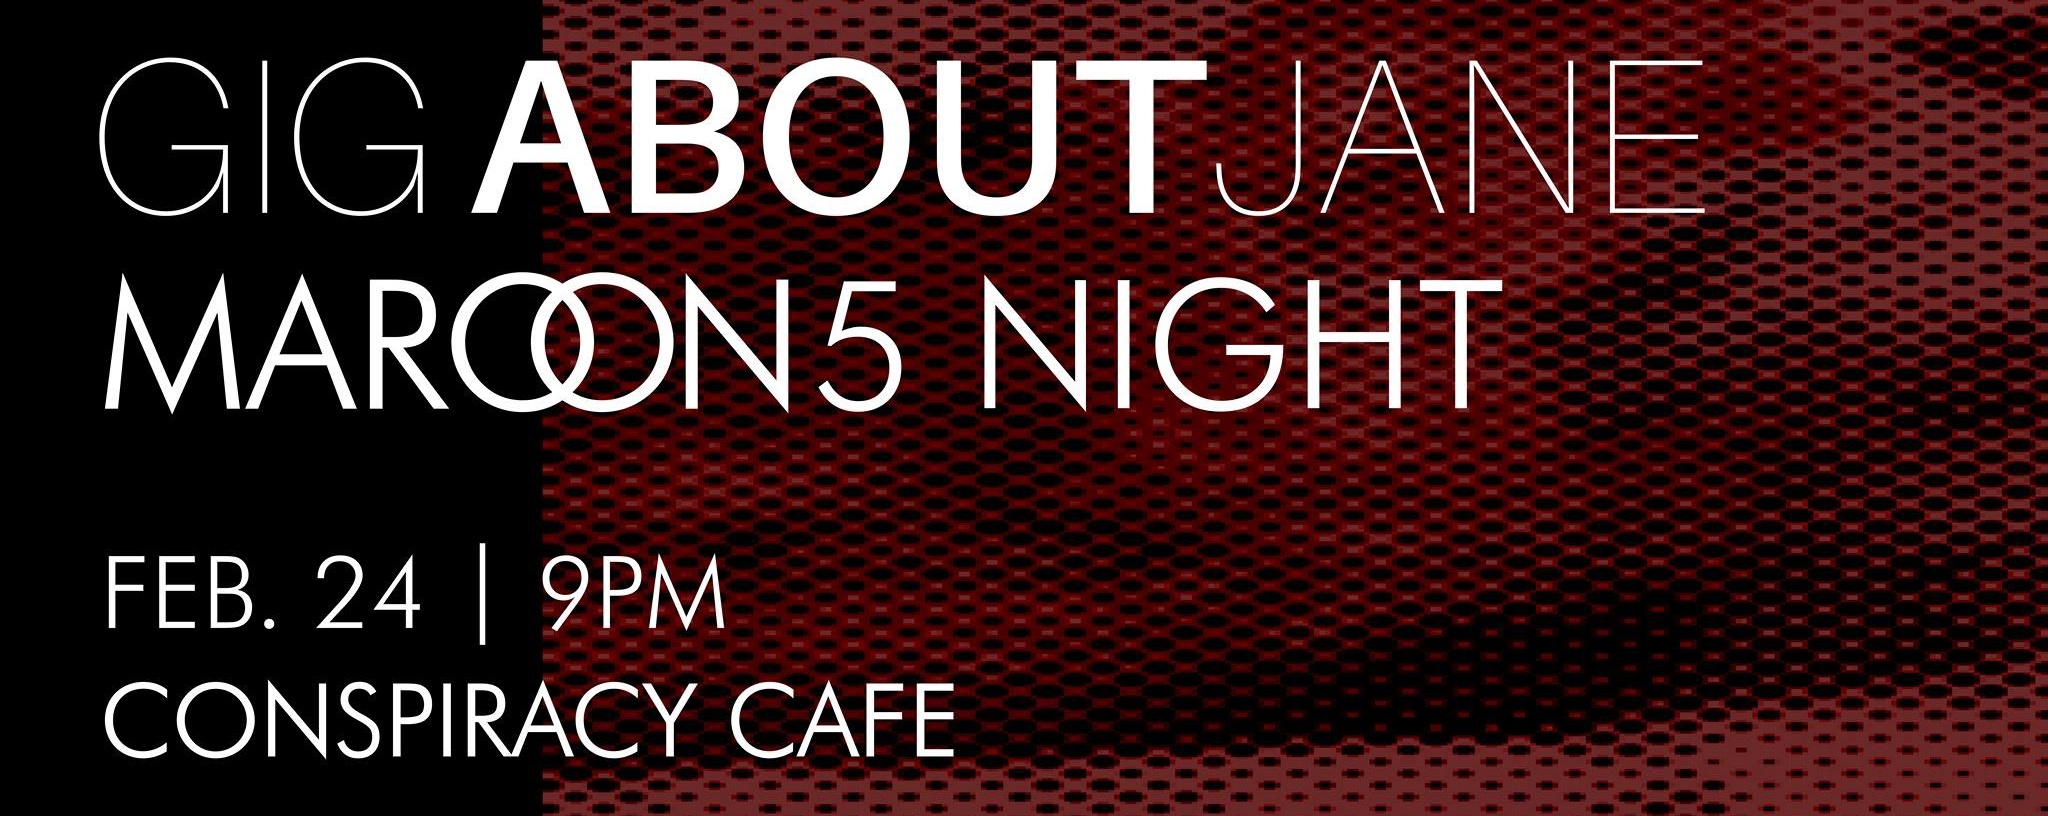 Gig About Jane: Maroon 5 Night